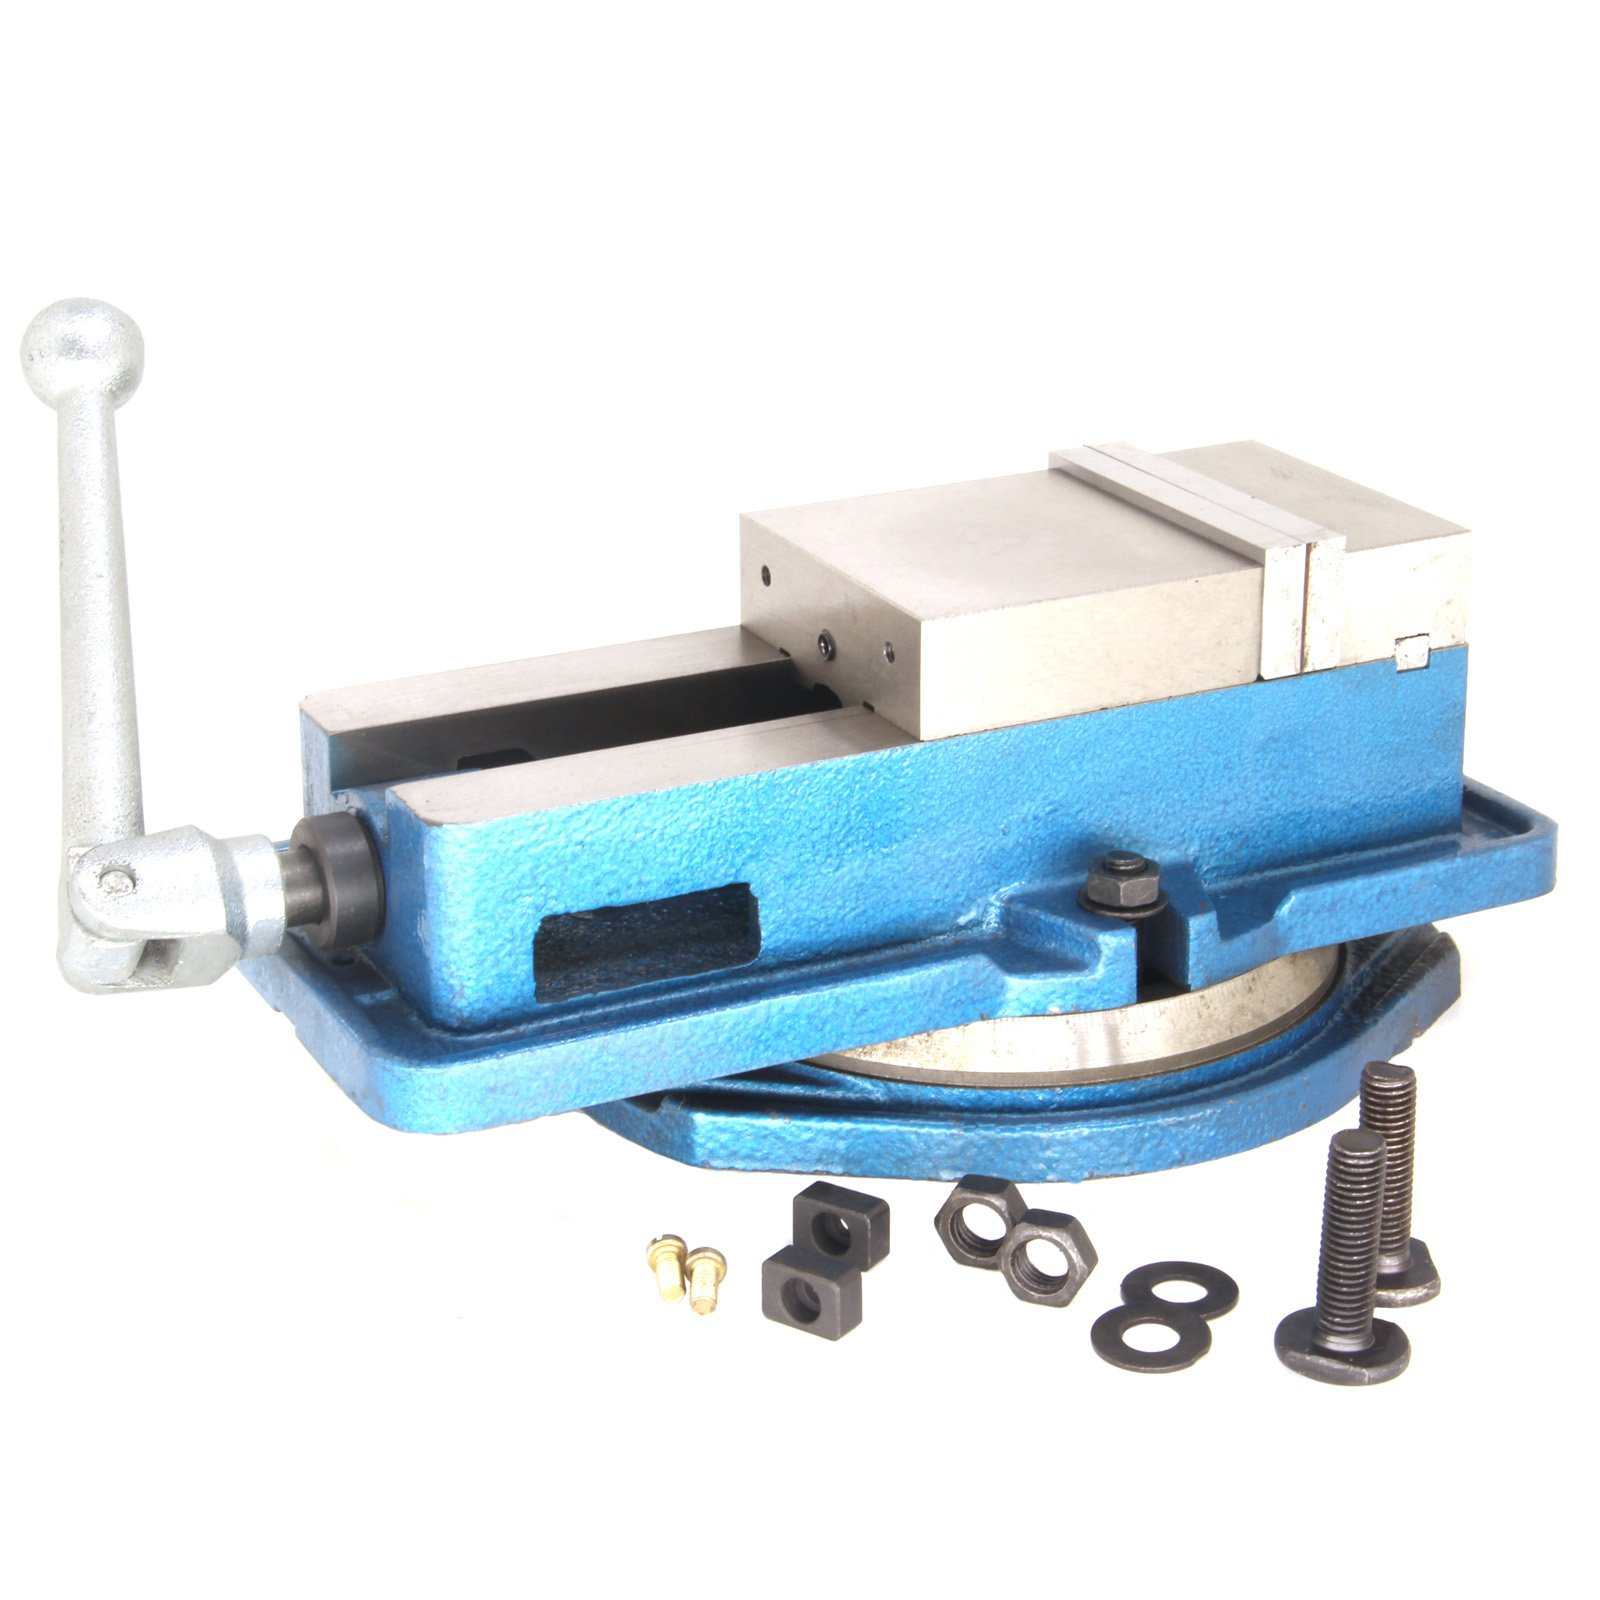 HFS (Tm) 6'' Milling Machine Lockdown Vise -Swiveling Base - Hardened Metal - CNC Vise